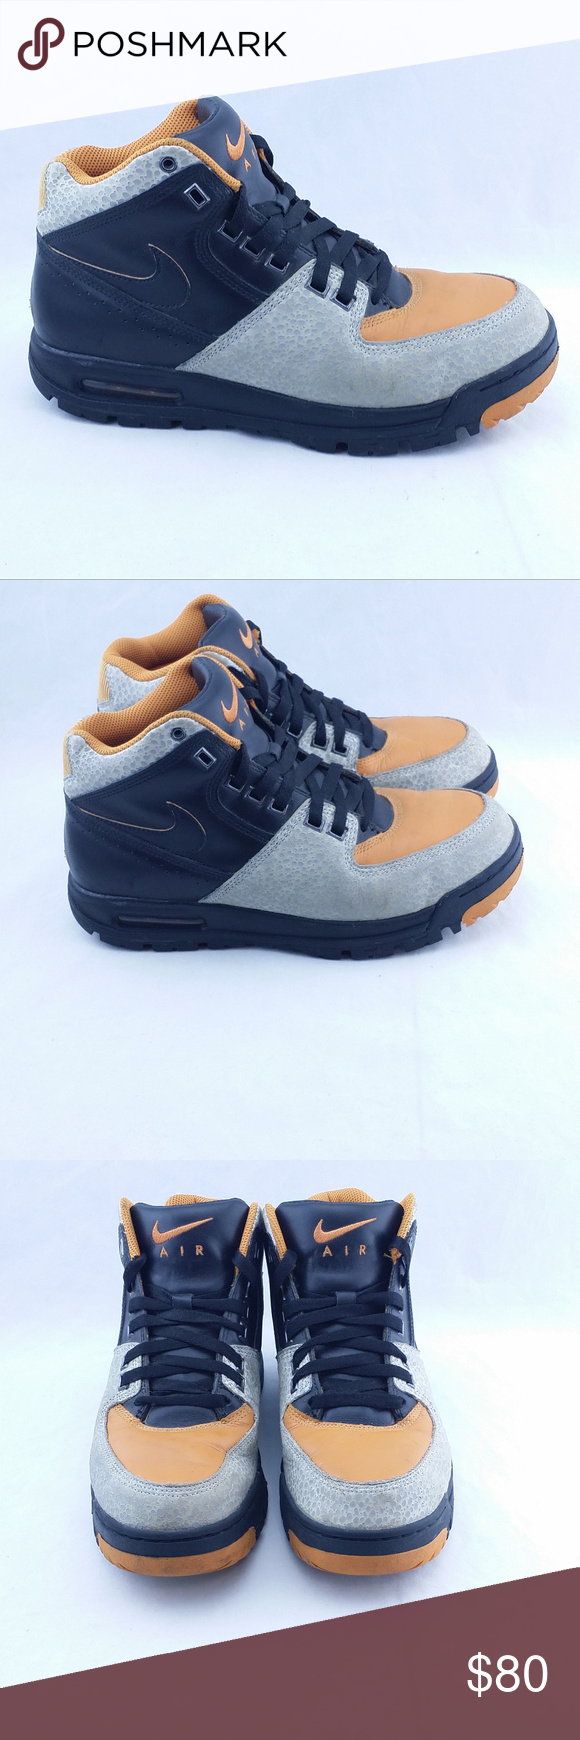 best service 3b816 1ad59 ... Nike Air Max Worknesh VTG 2009 High Men Sz 9 Vintage Nike Air Max  Worknesh 2009 Nike ACG ...